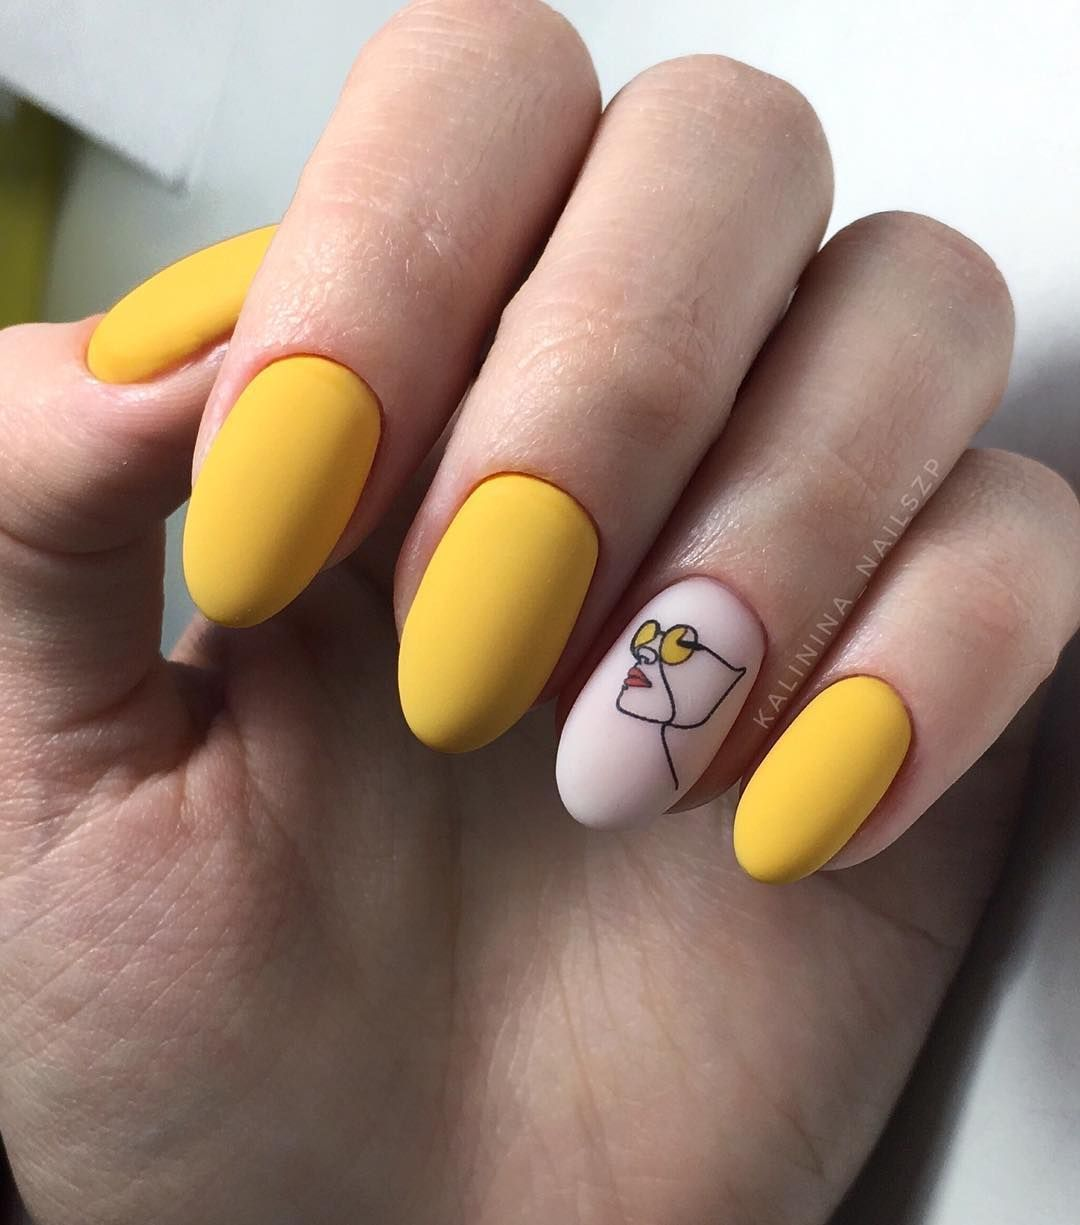 Easy Classic Prosty French Manicure With Images Classy Nails